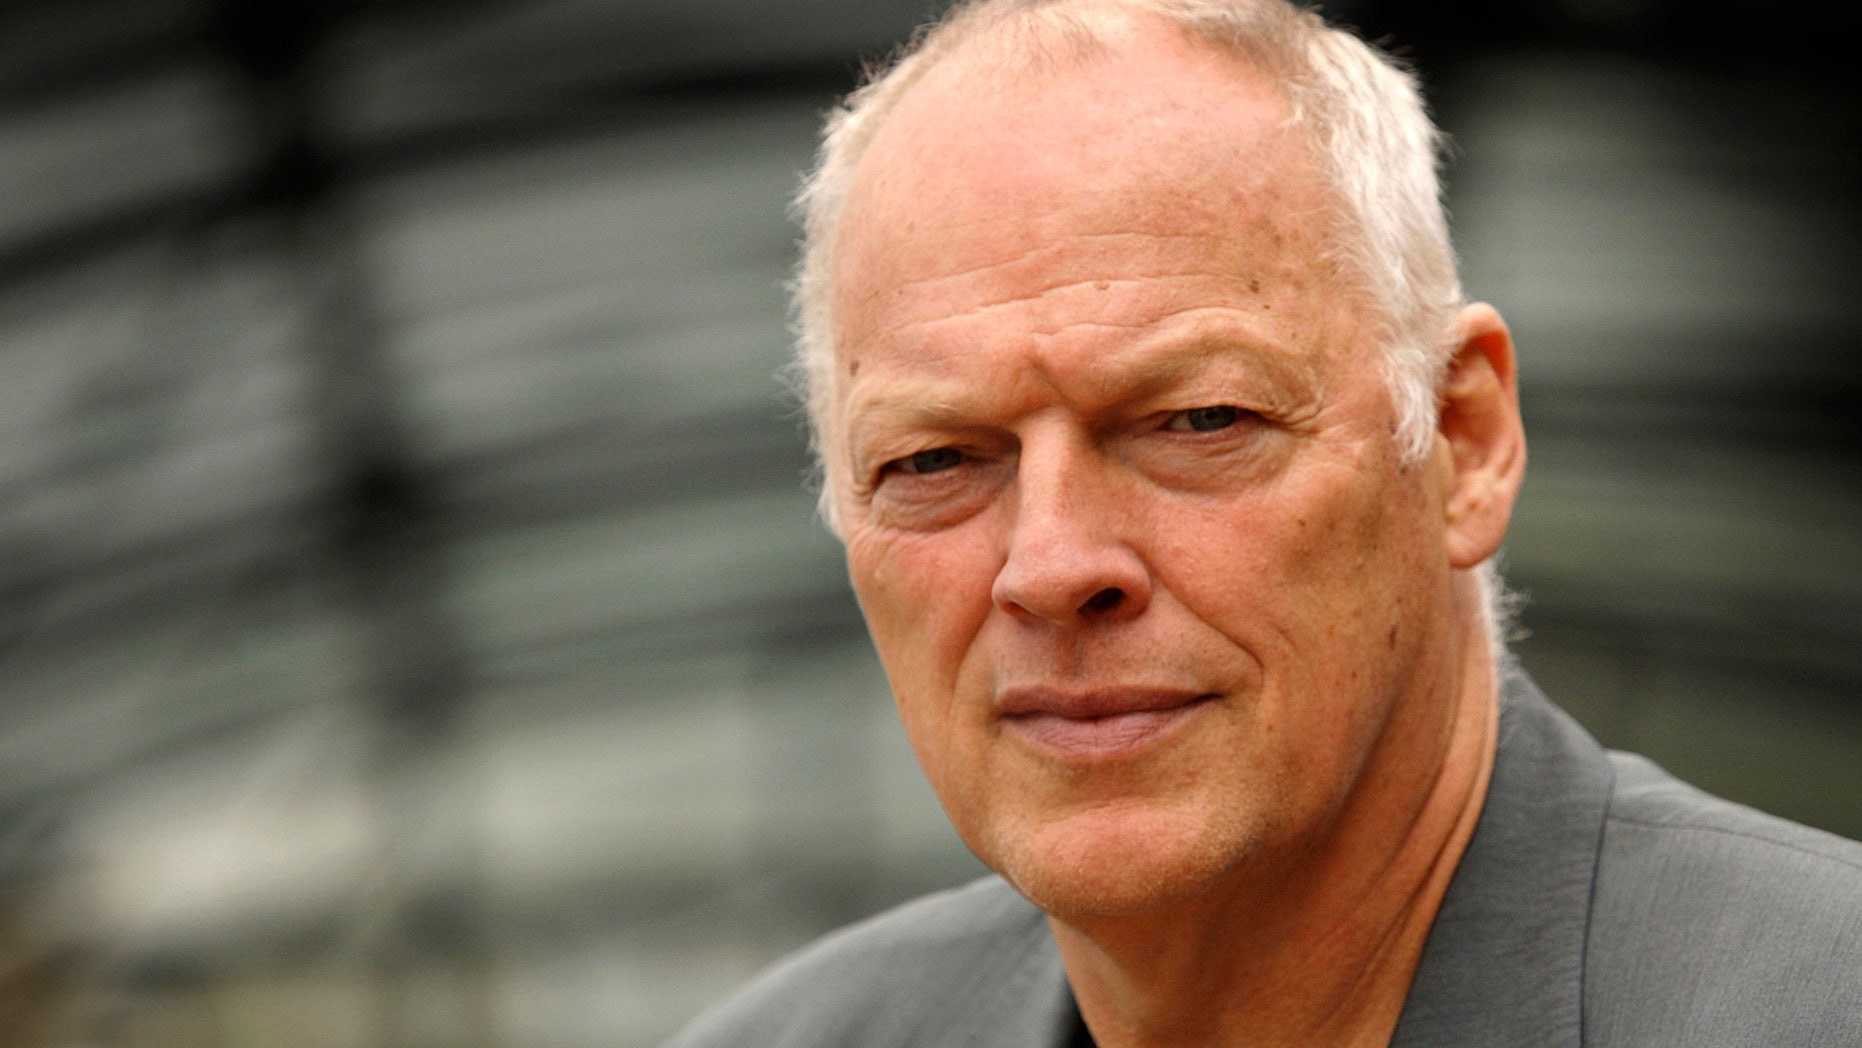 FILE -  An Aug. 13, 2008, file photo is of formerPink Floyd band member David Gilmour in London. Police say a 53-year-old man who went to a Minnesota hospital for treatment on April 20, 2013, is accused of pretending to be singer-guitarist David Gilmour _ and racking up as much as $100,000 in unpaid medical bills. Authorities say the man didn't have health insurance, was treated and released, but not before signing an autograph. (AP Photo/Joel Ryan, File)